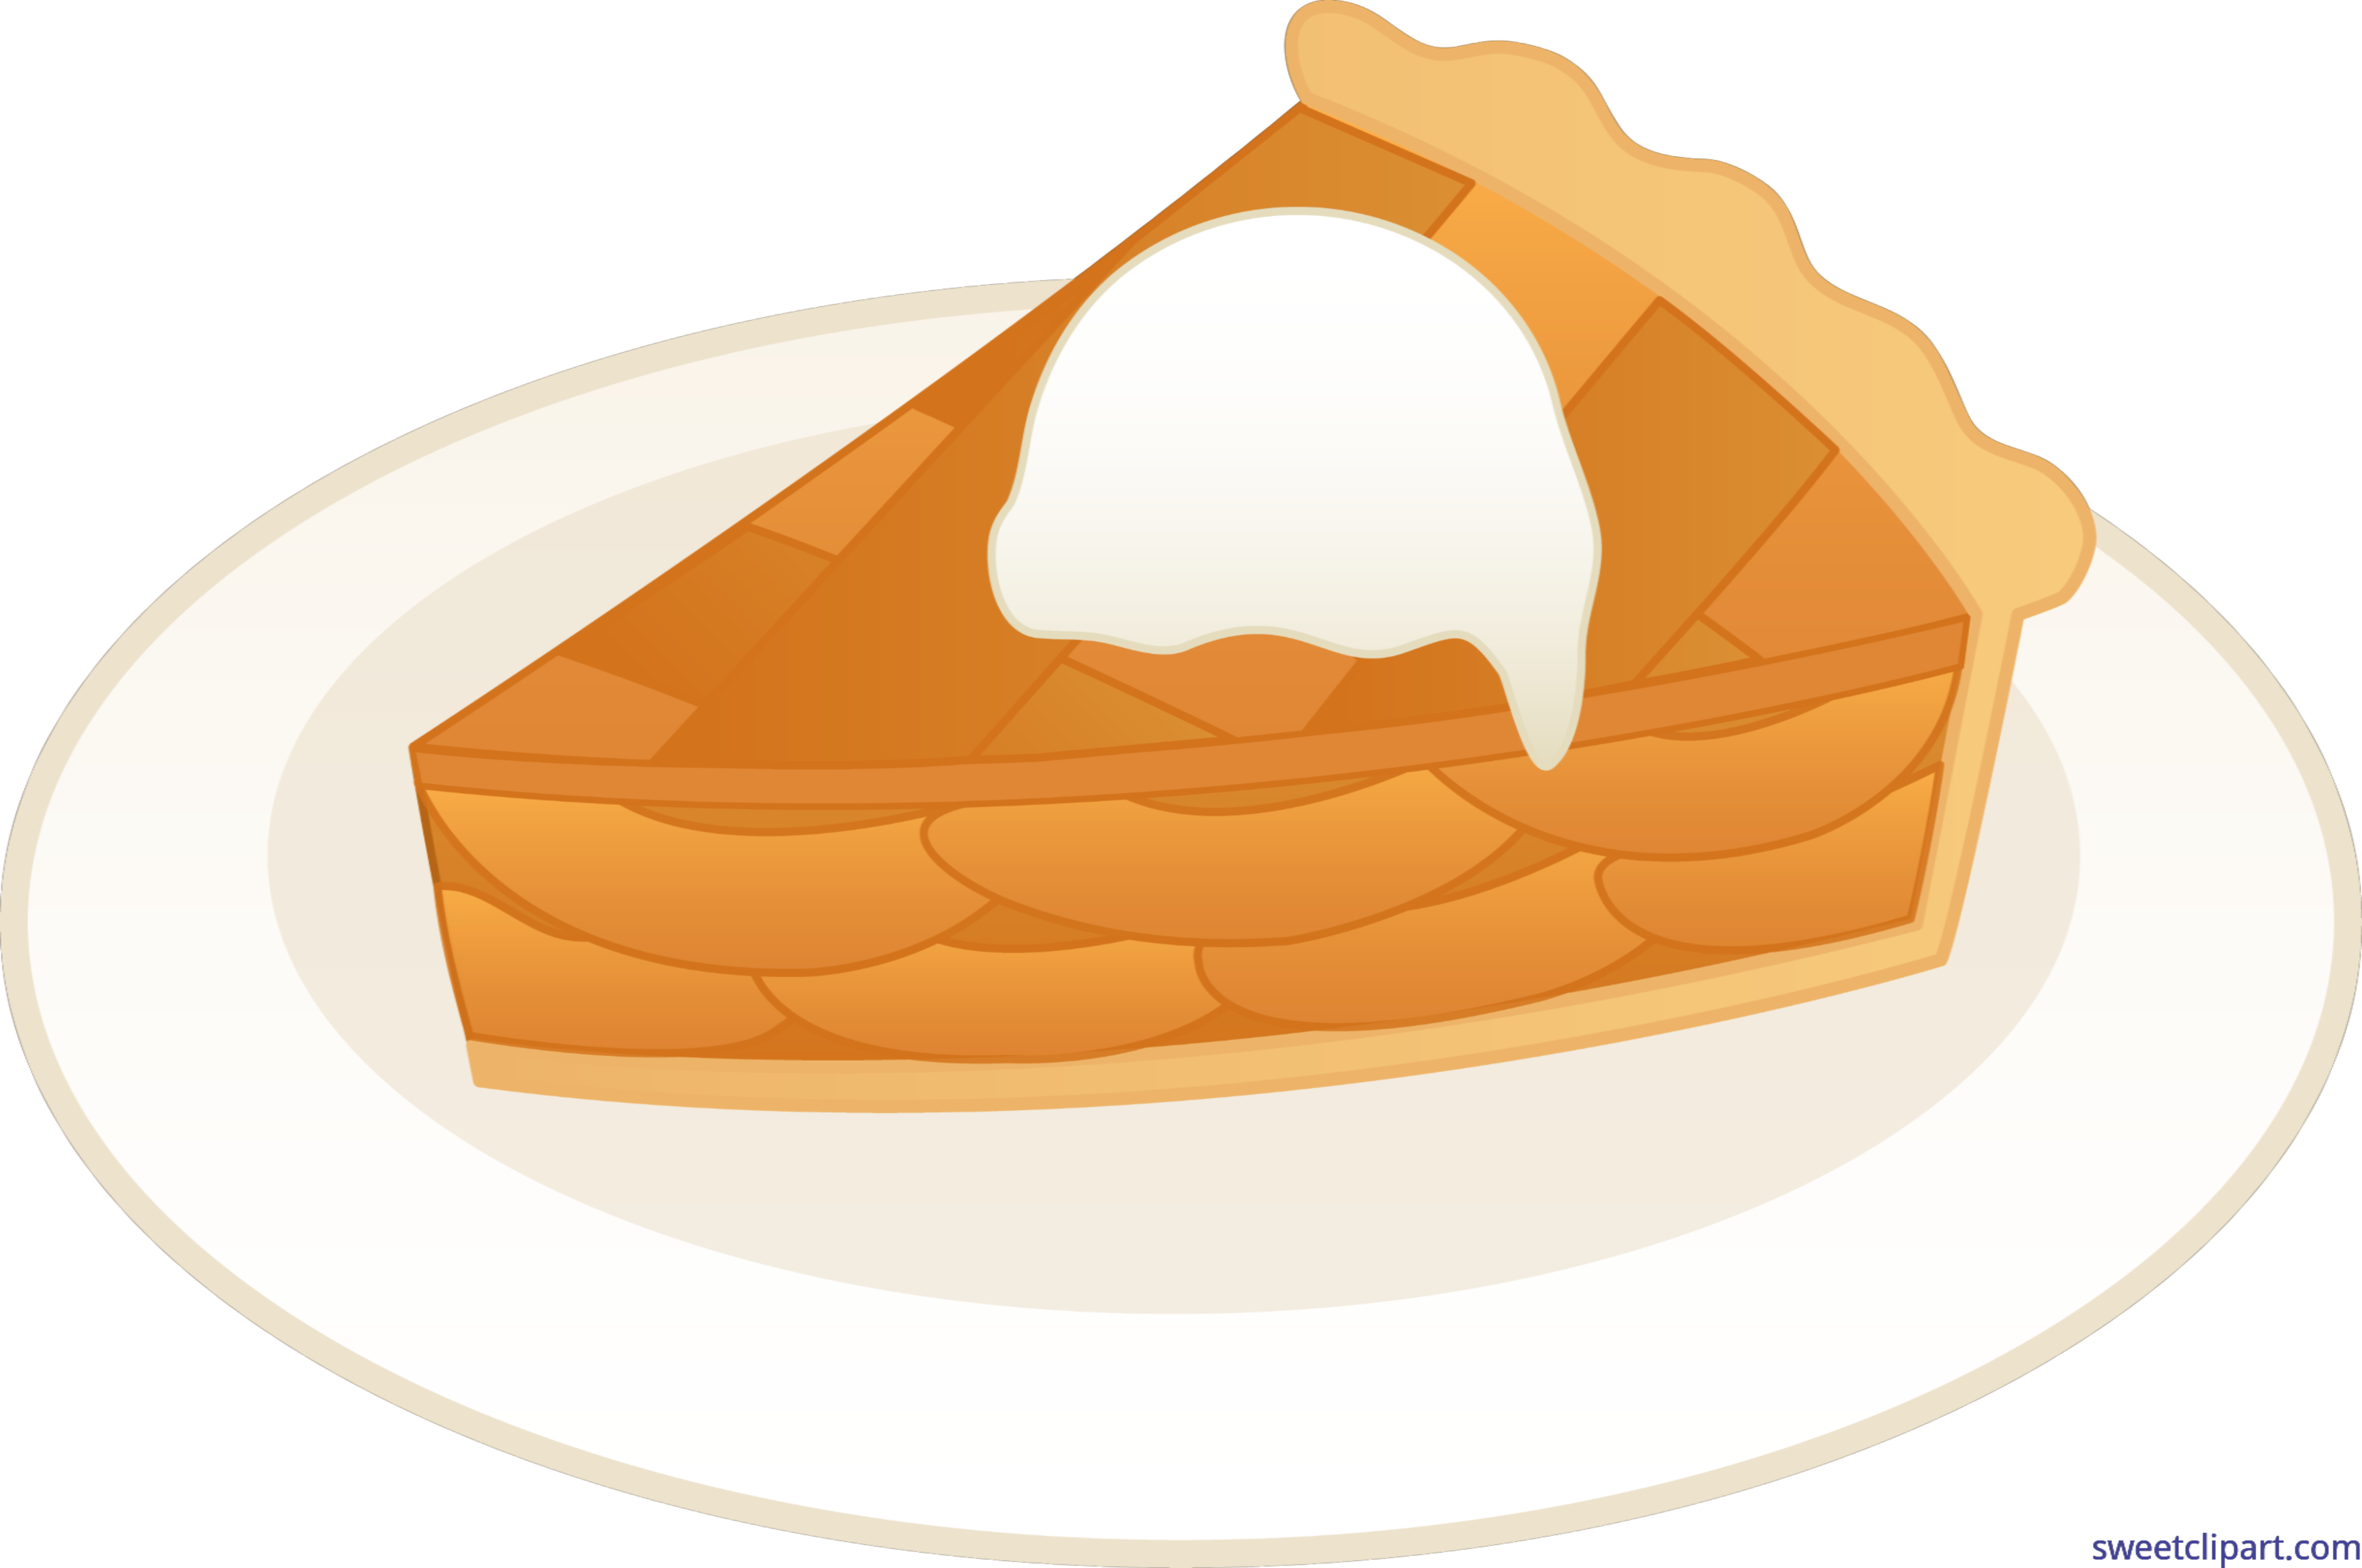 Apple pie free clipart picture royalty free library Apple Pie Ala Mode Clip Art - Sweet Clip Art picture royalty free library